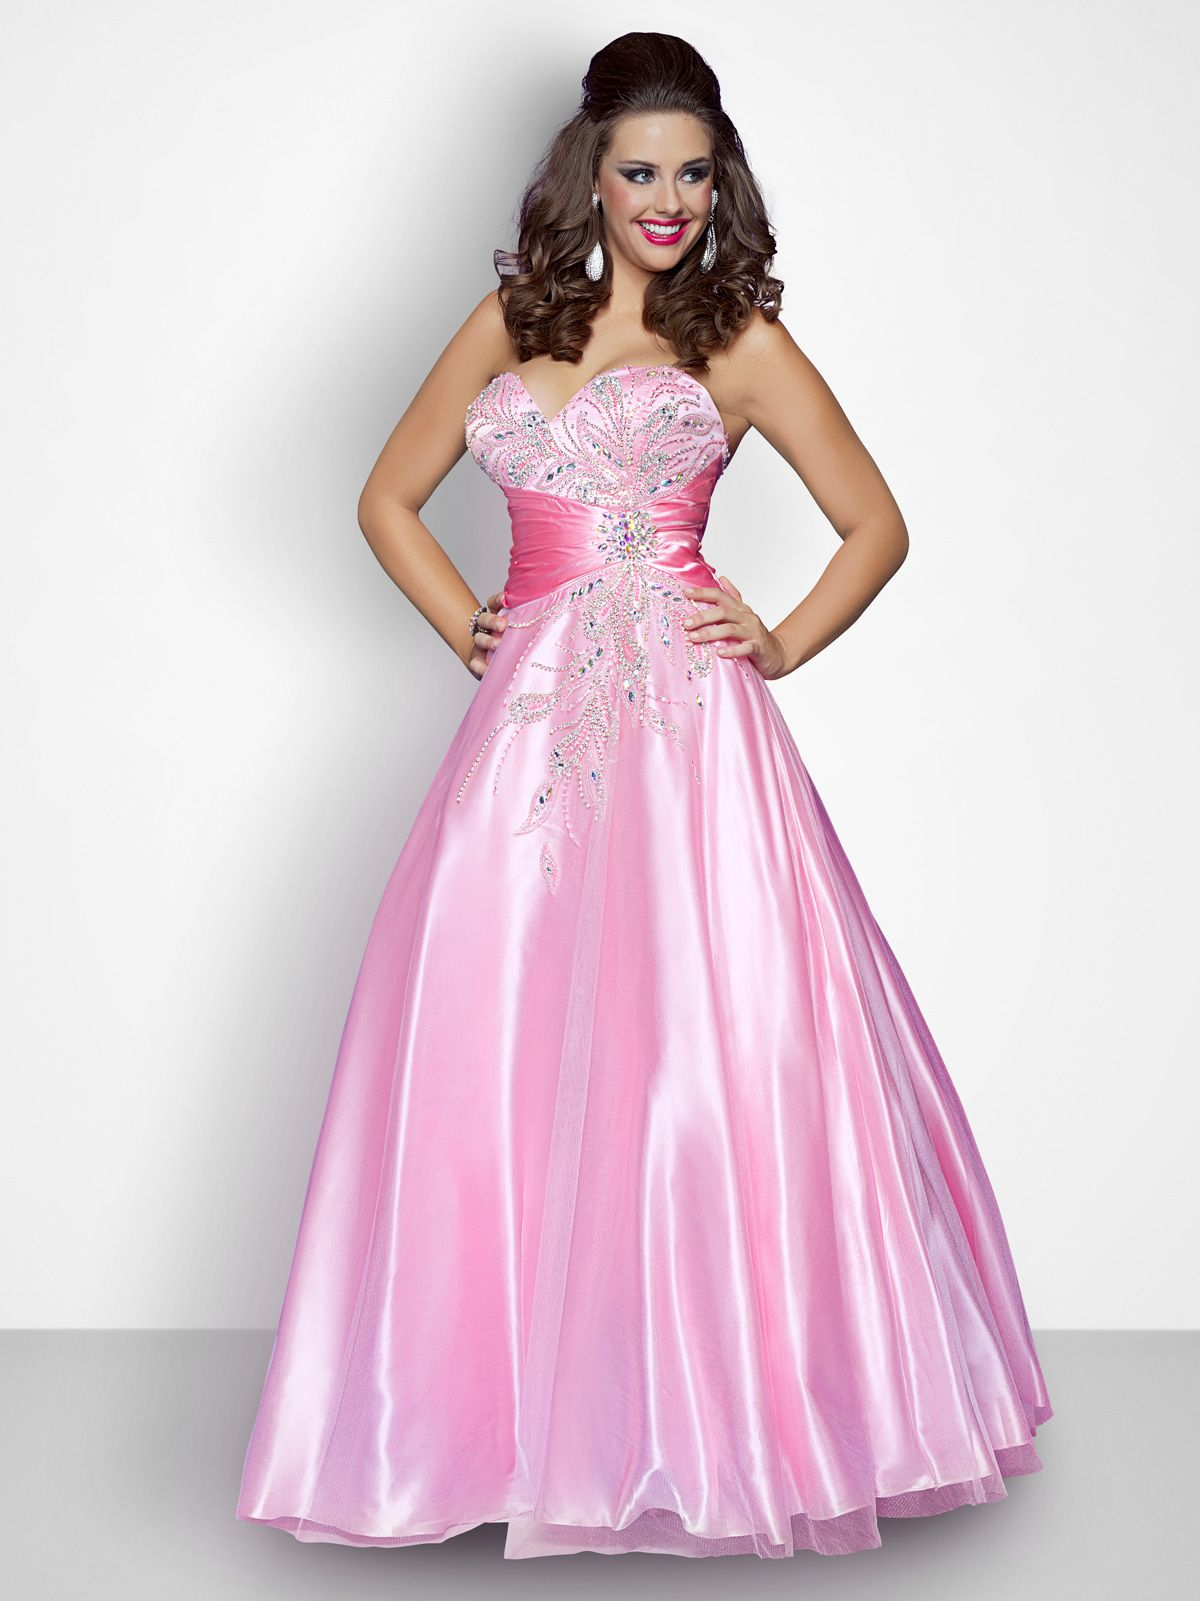 Dazzle on the dance floor sporting the blush prom dress w this